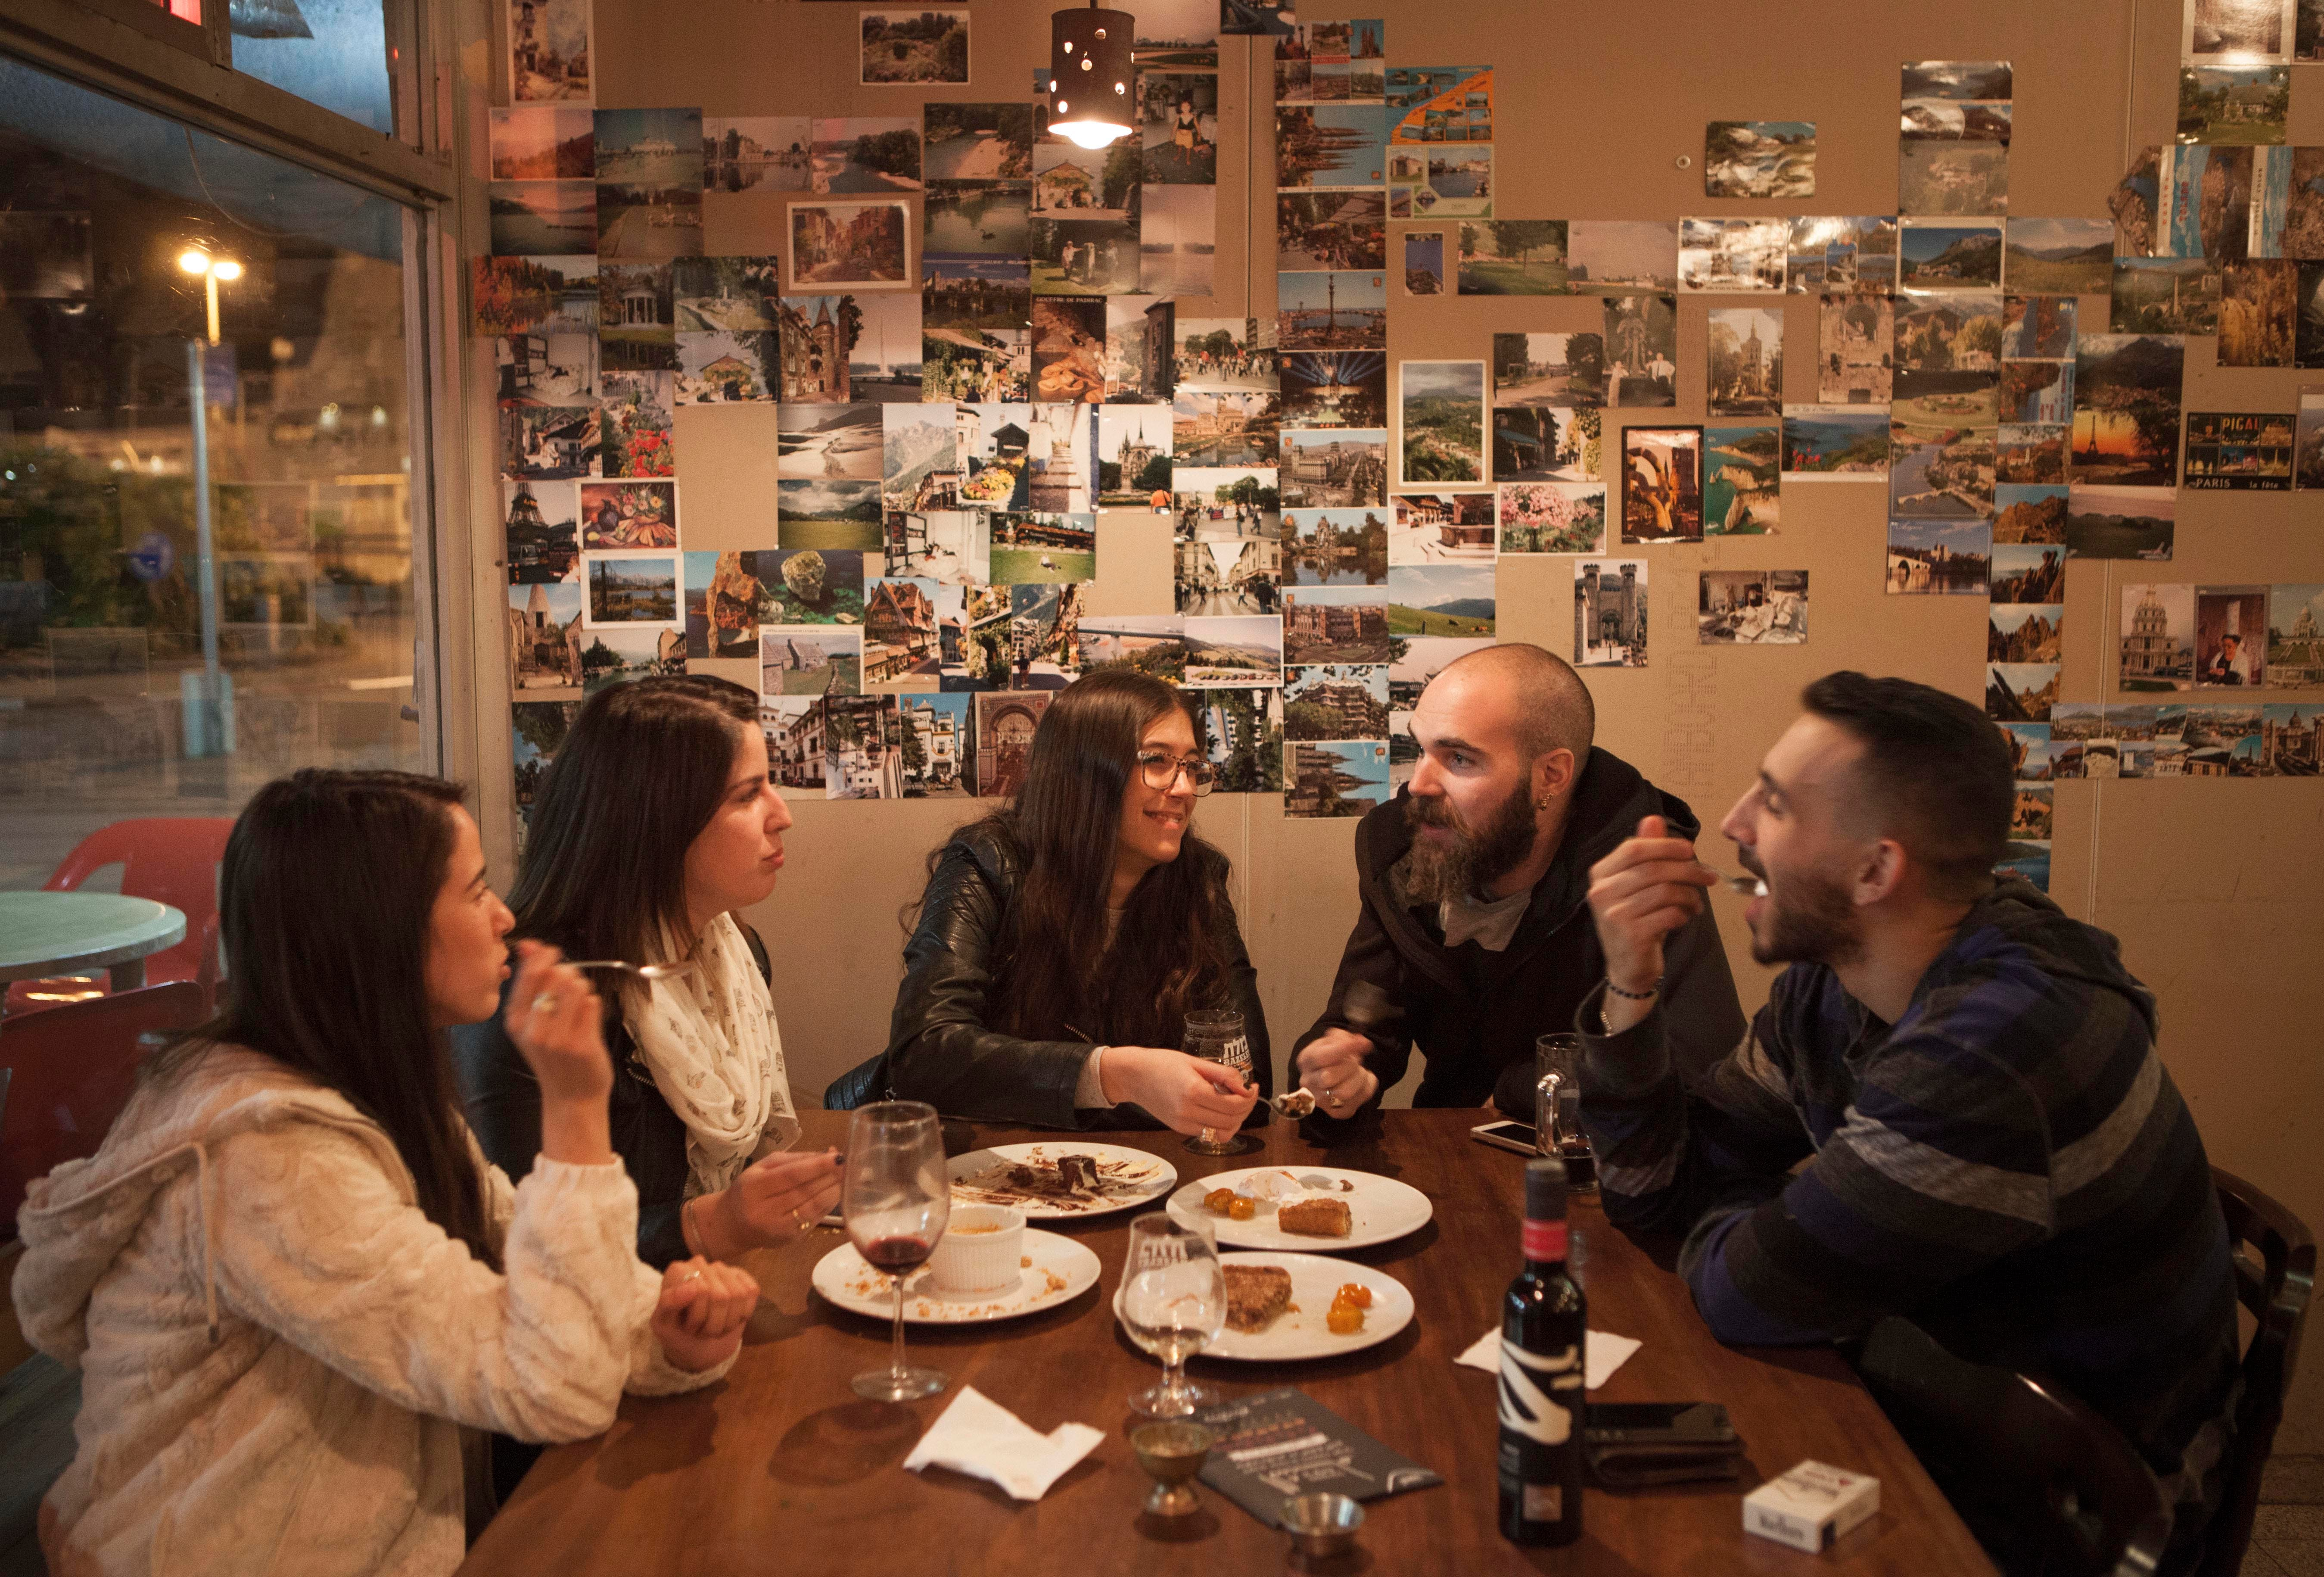 In this photo taken Tuesday, Dec. 8, 2015, Israelis enjoy a meal during an Arab Food Festival in Haifa, Israel. The festival featured about two dozen chefs from around Israel and east Jerusalem. (AP